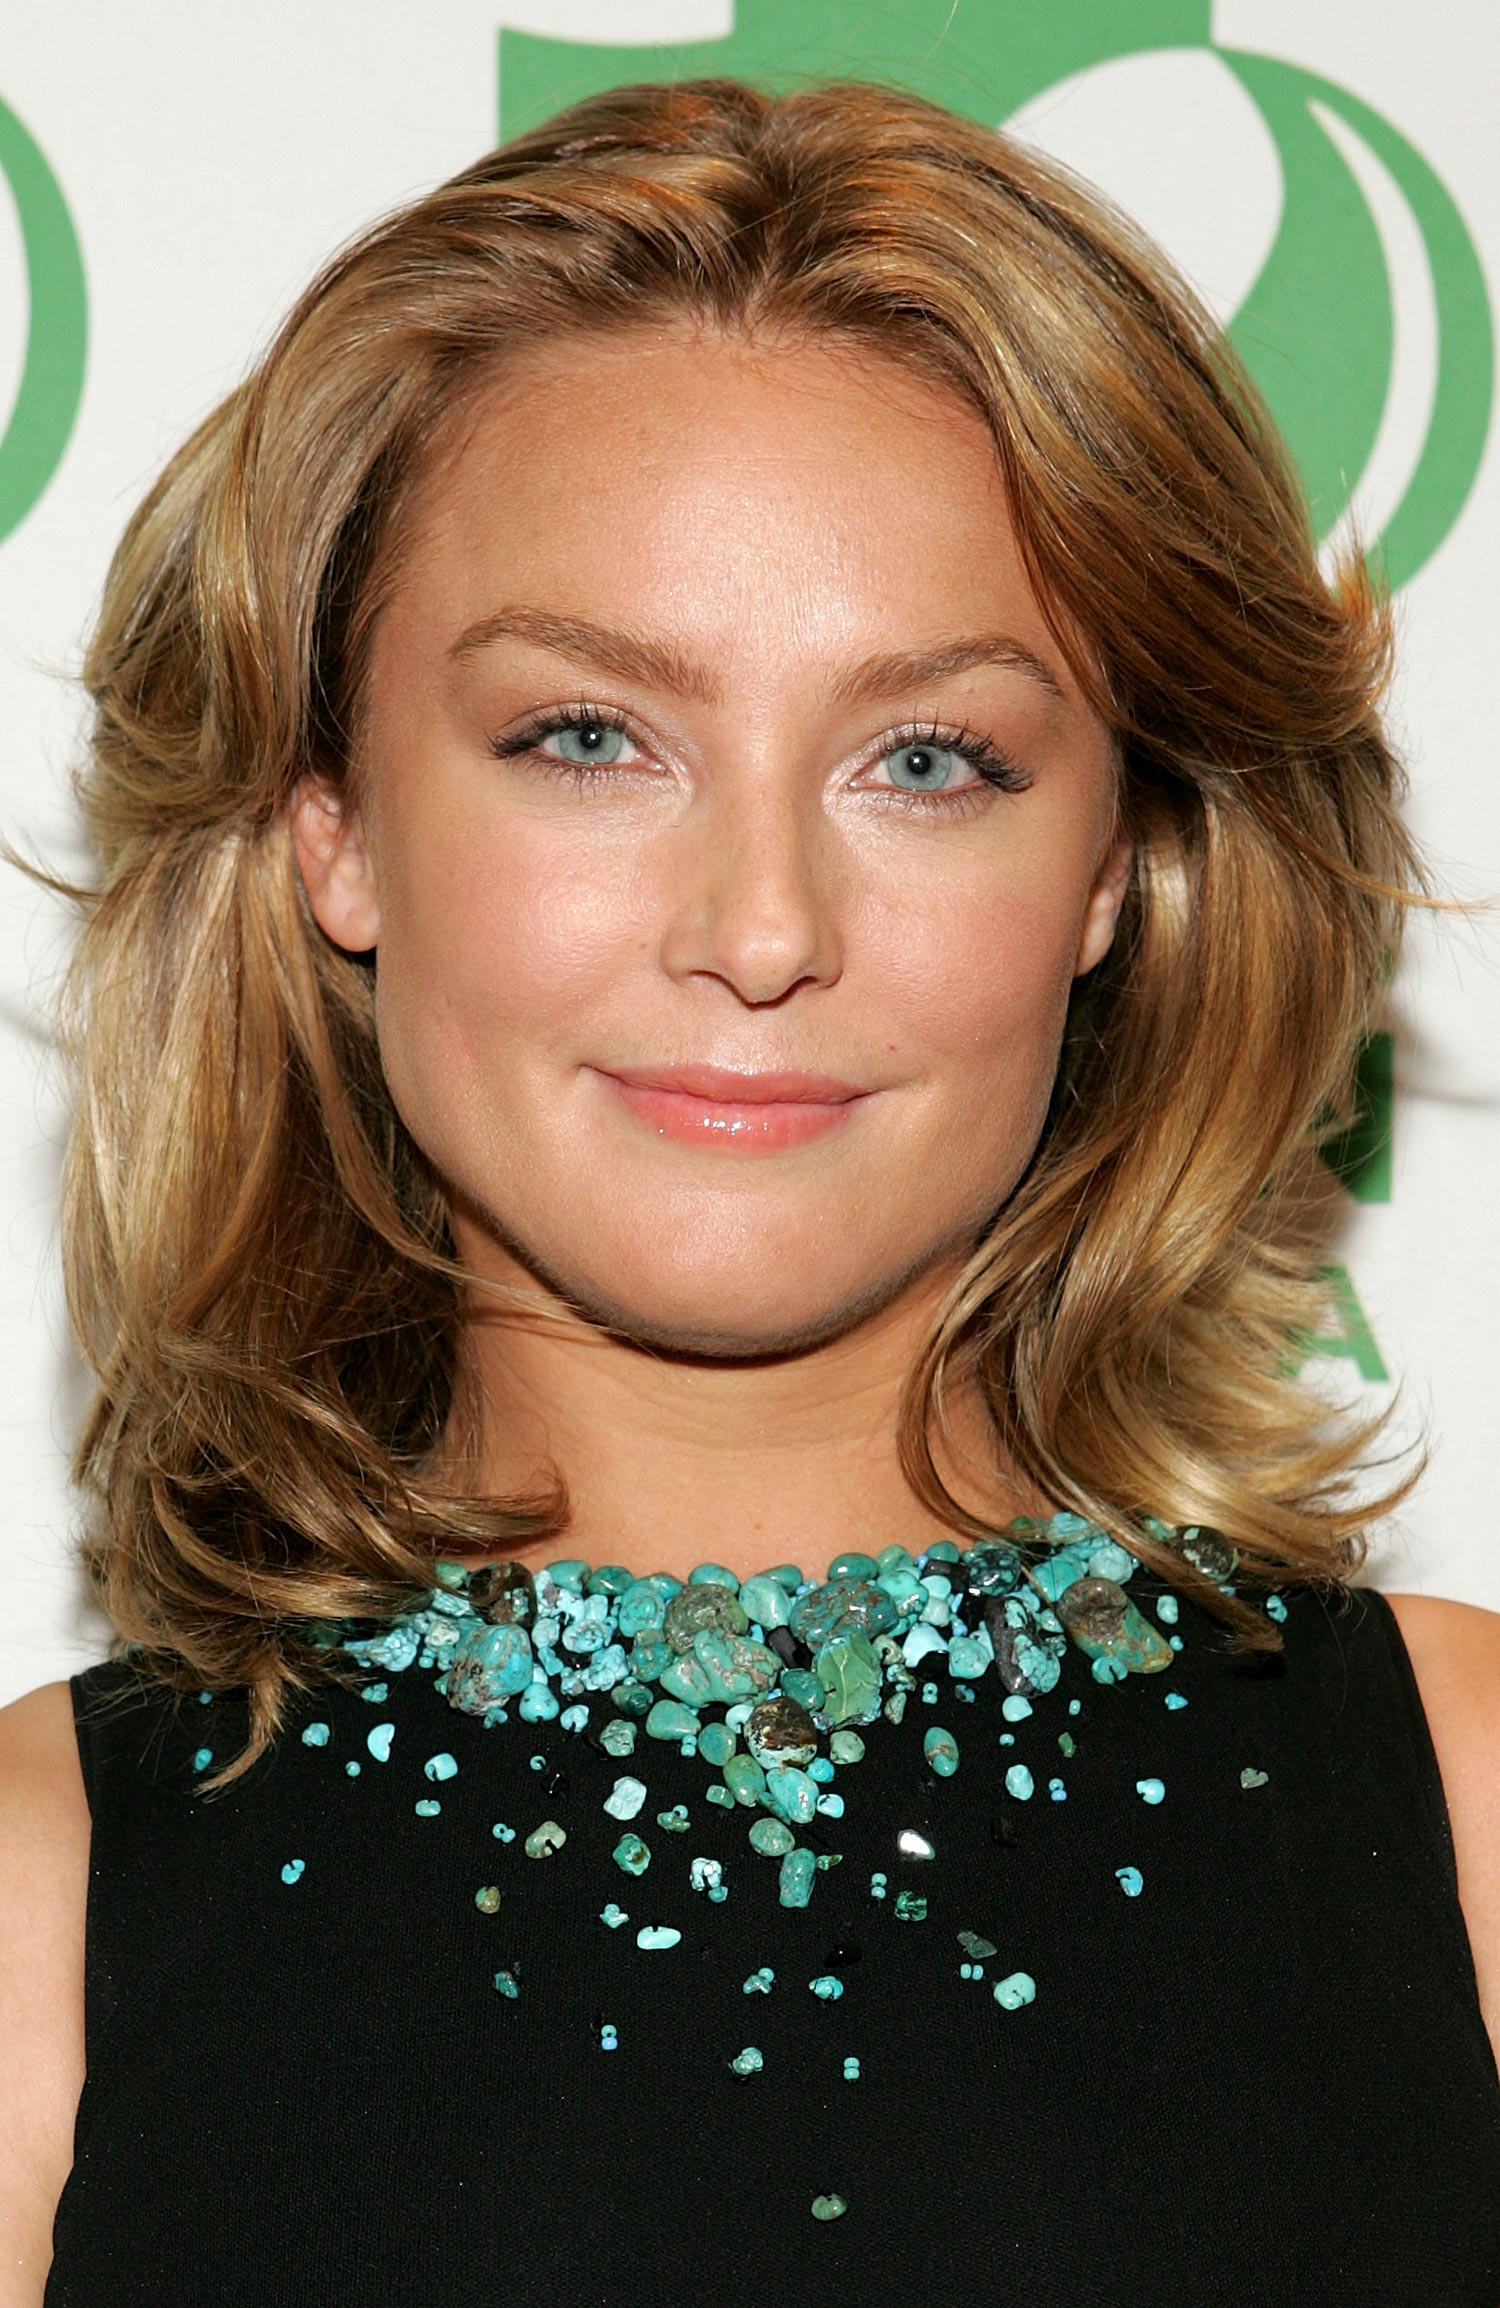 IMG/jpg/elisabeth-rohm-2007-green-cross-millenium-awards-hq-01-1500.jpg